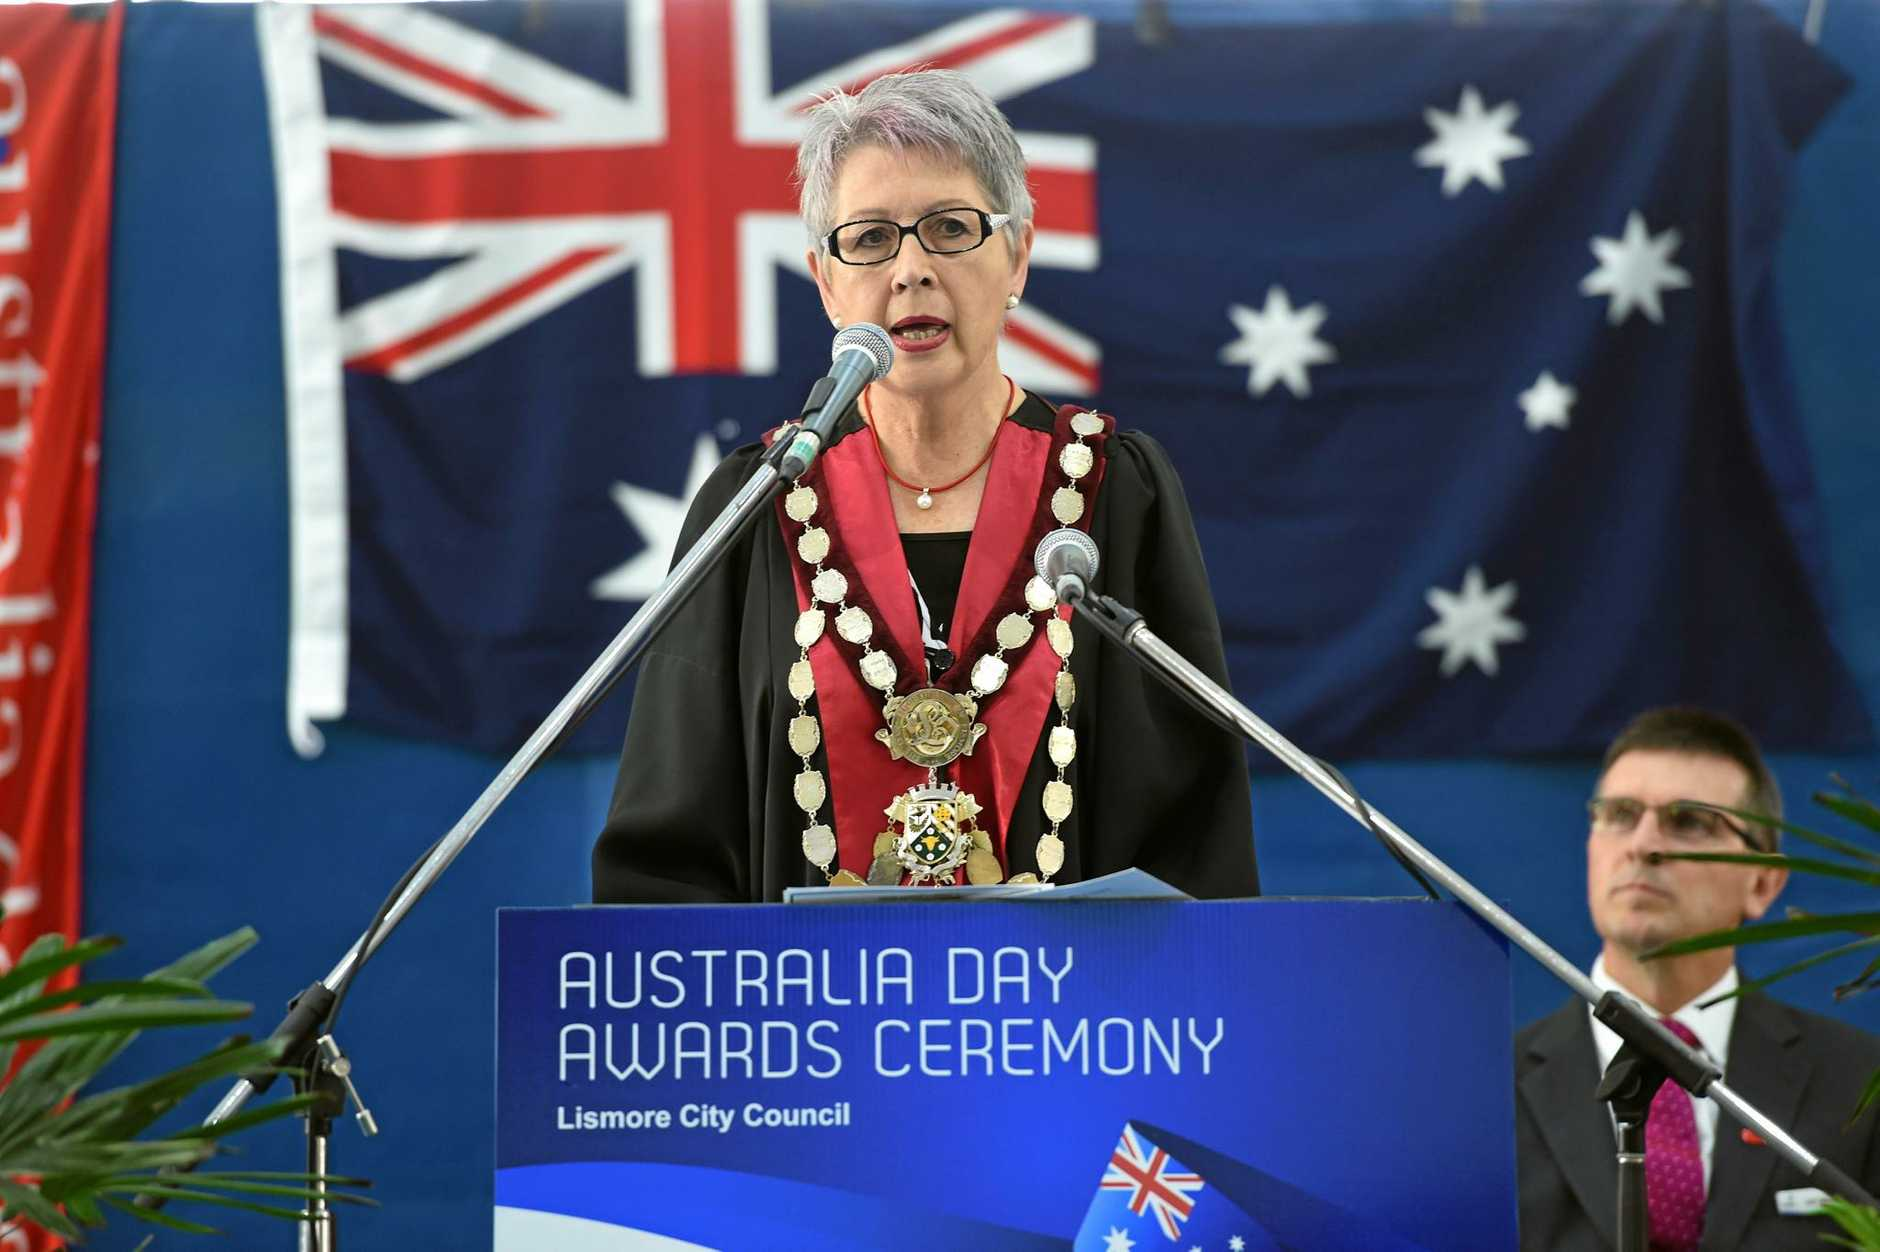 Lismore Mayor Jenny Dowel at the Australia Day ceremony at the Goonellabah Aquatic and Sport Centre in Goonellabah. Photo Marc Stapelberg / The Northern Star